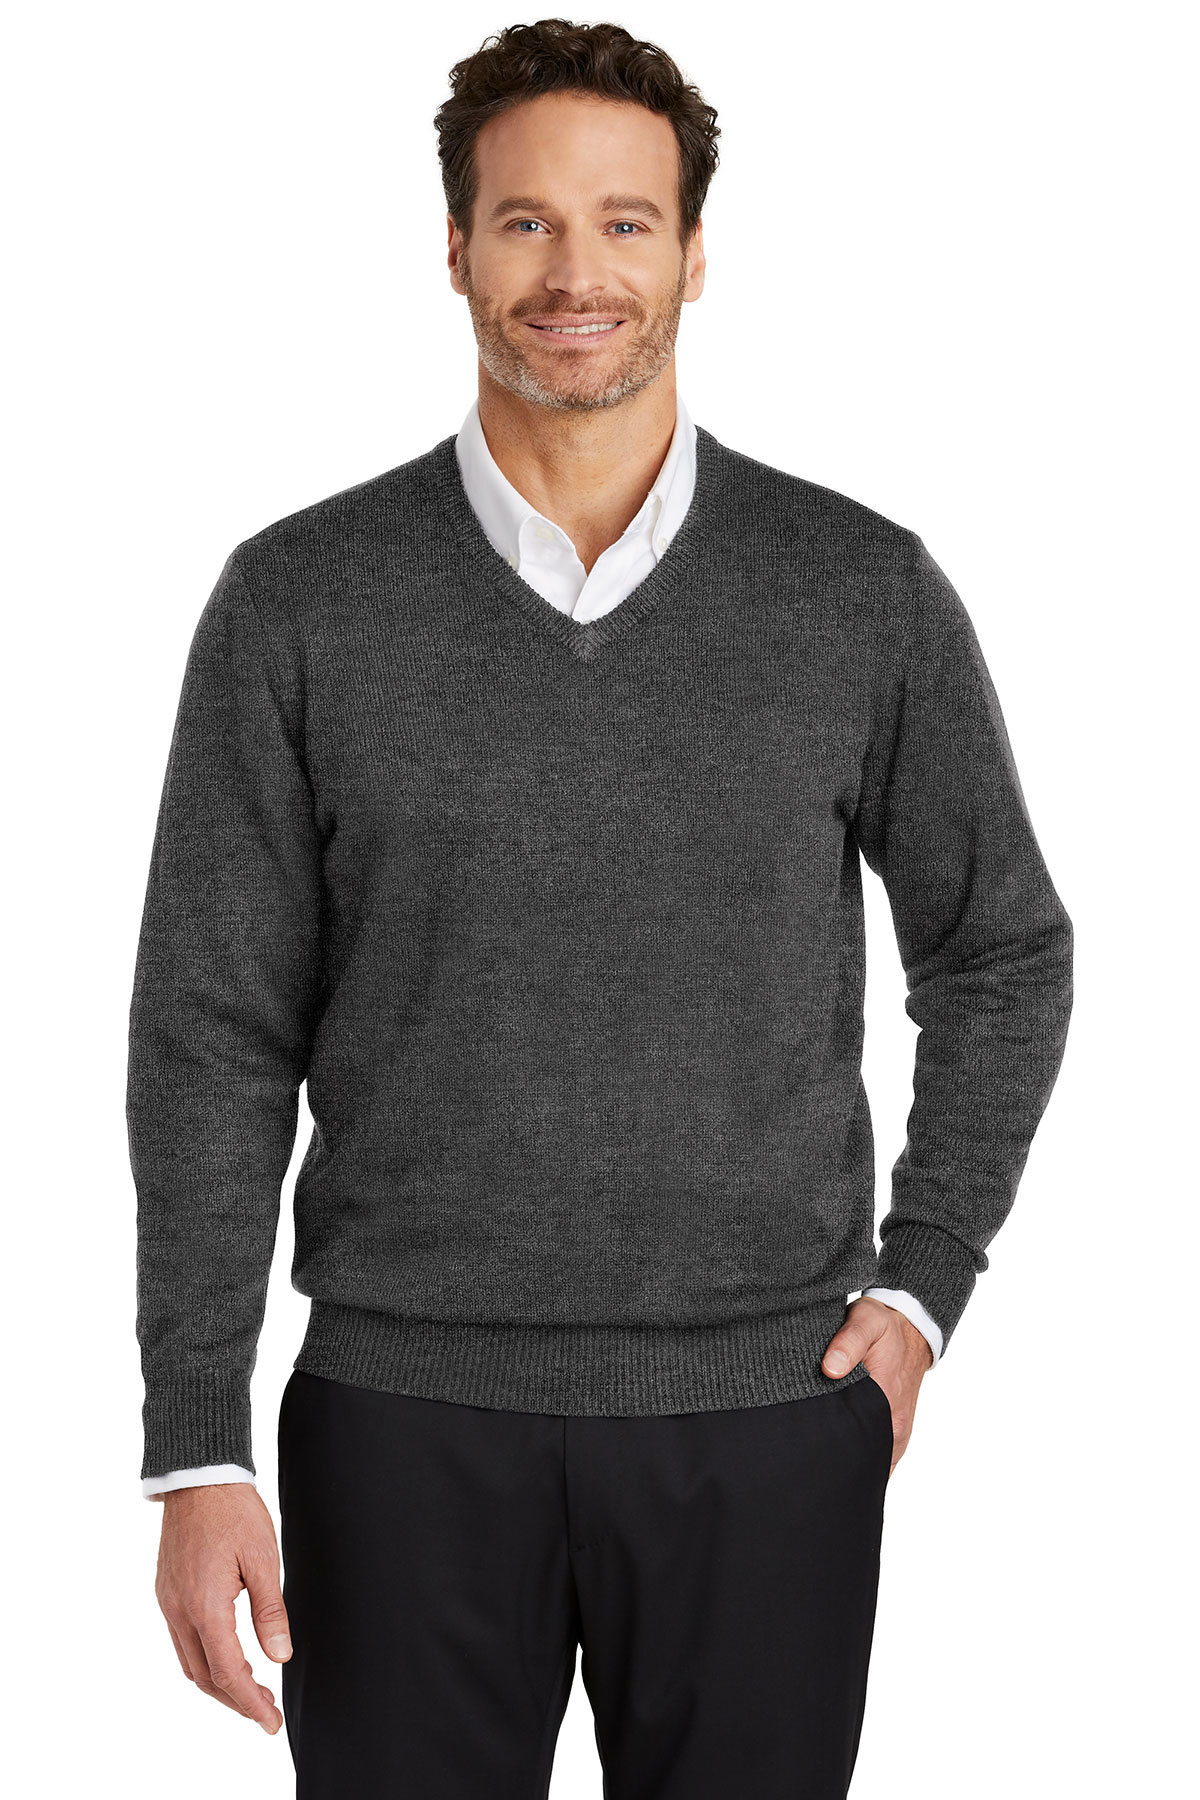 black and maroon adult sizes SALE PRICES V-neck knitted jumper 100/% acrylic